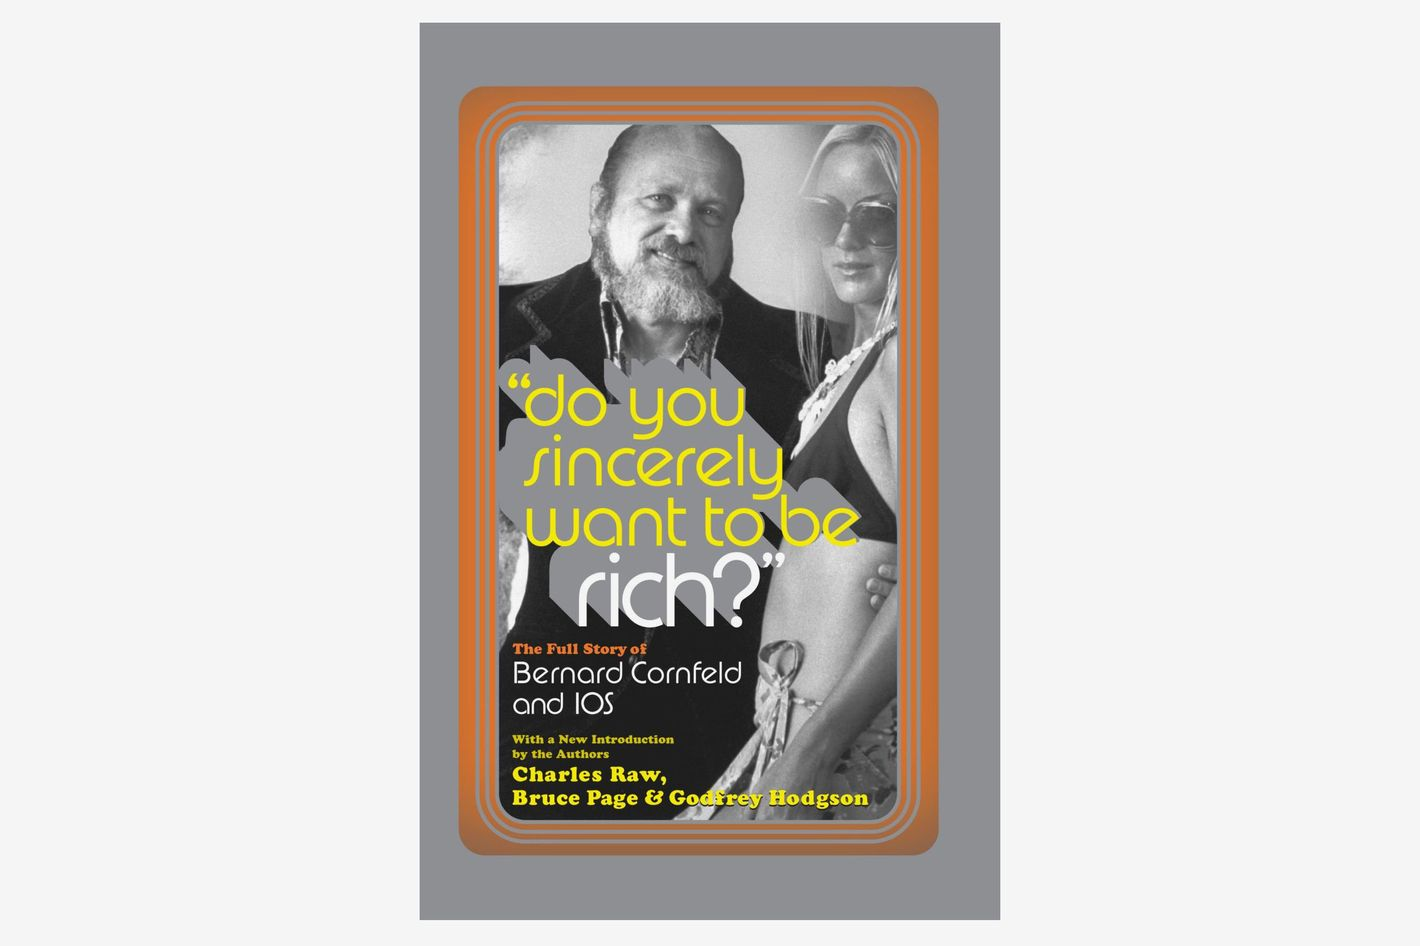 Do You Sincerely Want to Be Rich?: The Full Story of Bernard Cornfeld and IOS by Charles Raw and Godfrey Hodgson